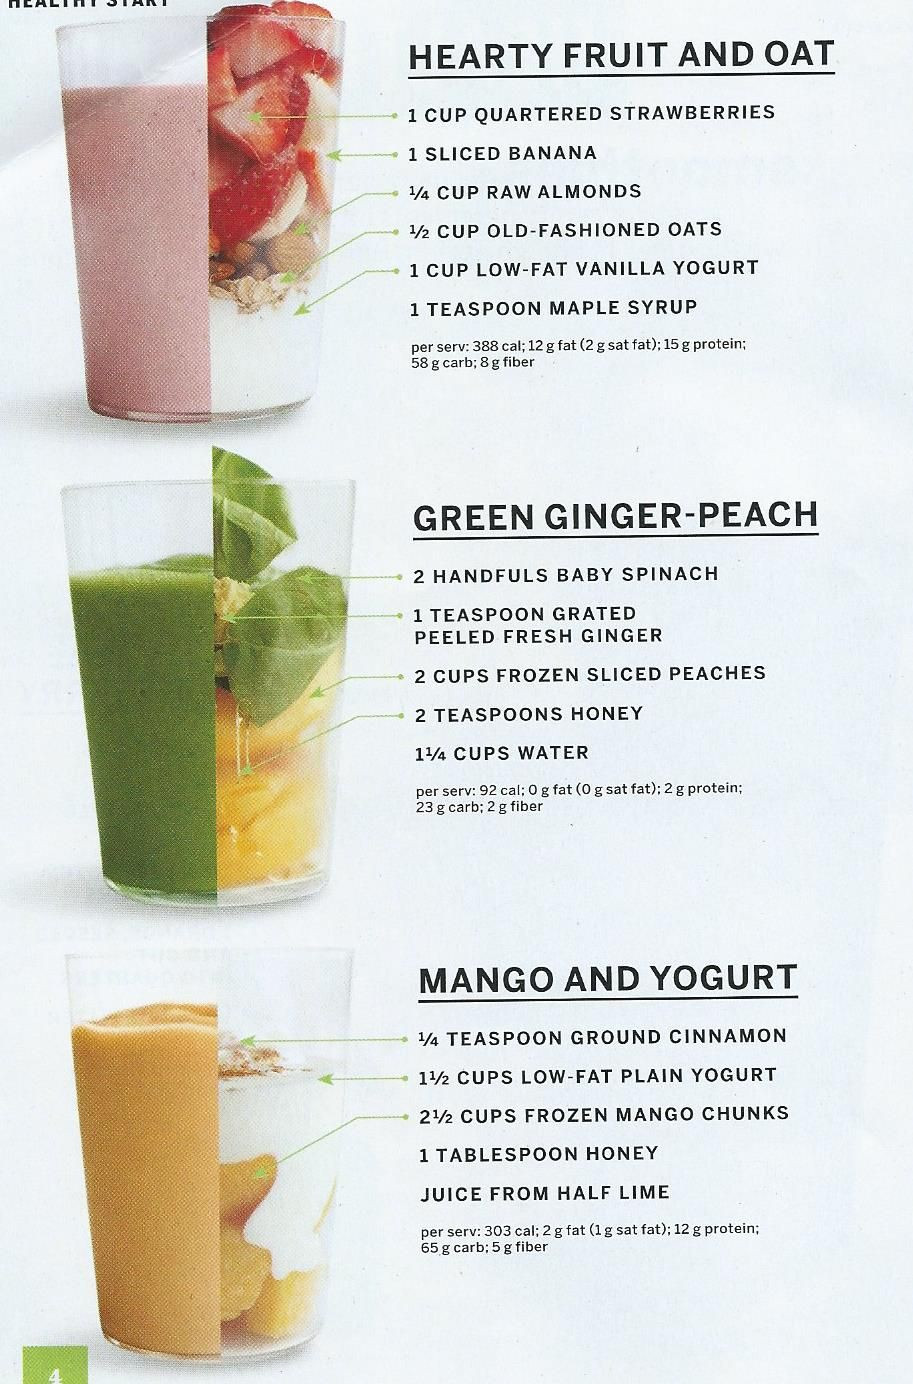 Healthy Fruit Smoothie Recipes  FREE 12 Day Green Smoothie E Course